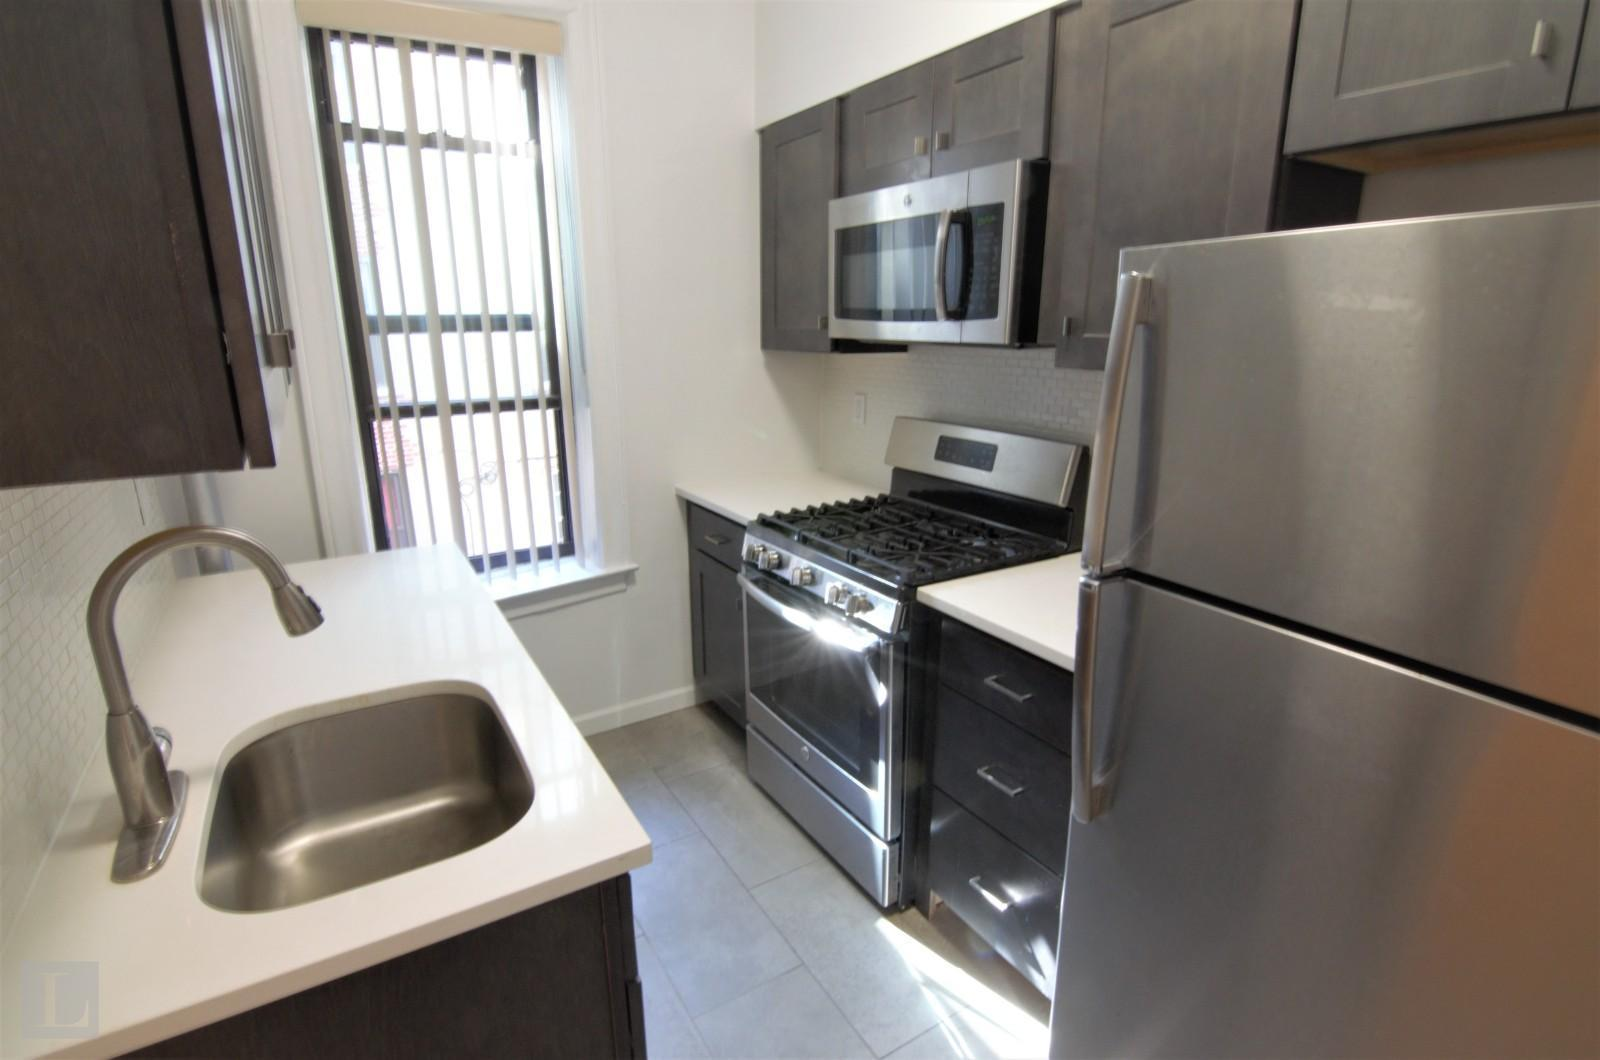 48-16 46th Street, Apt D5, Queens, New York 11104